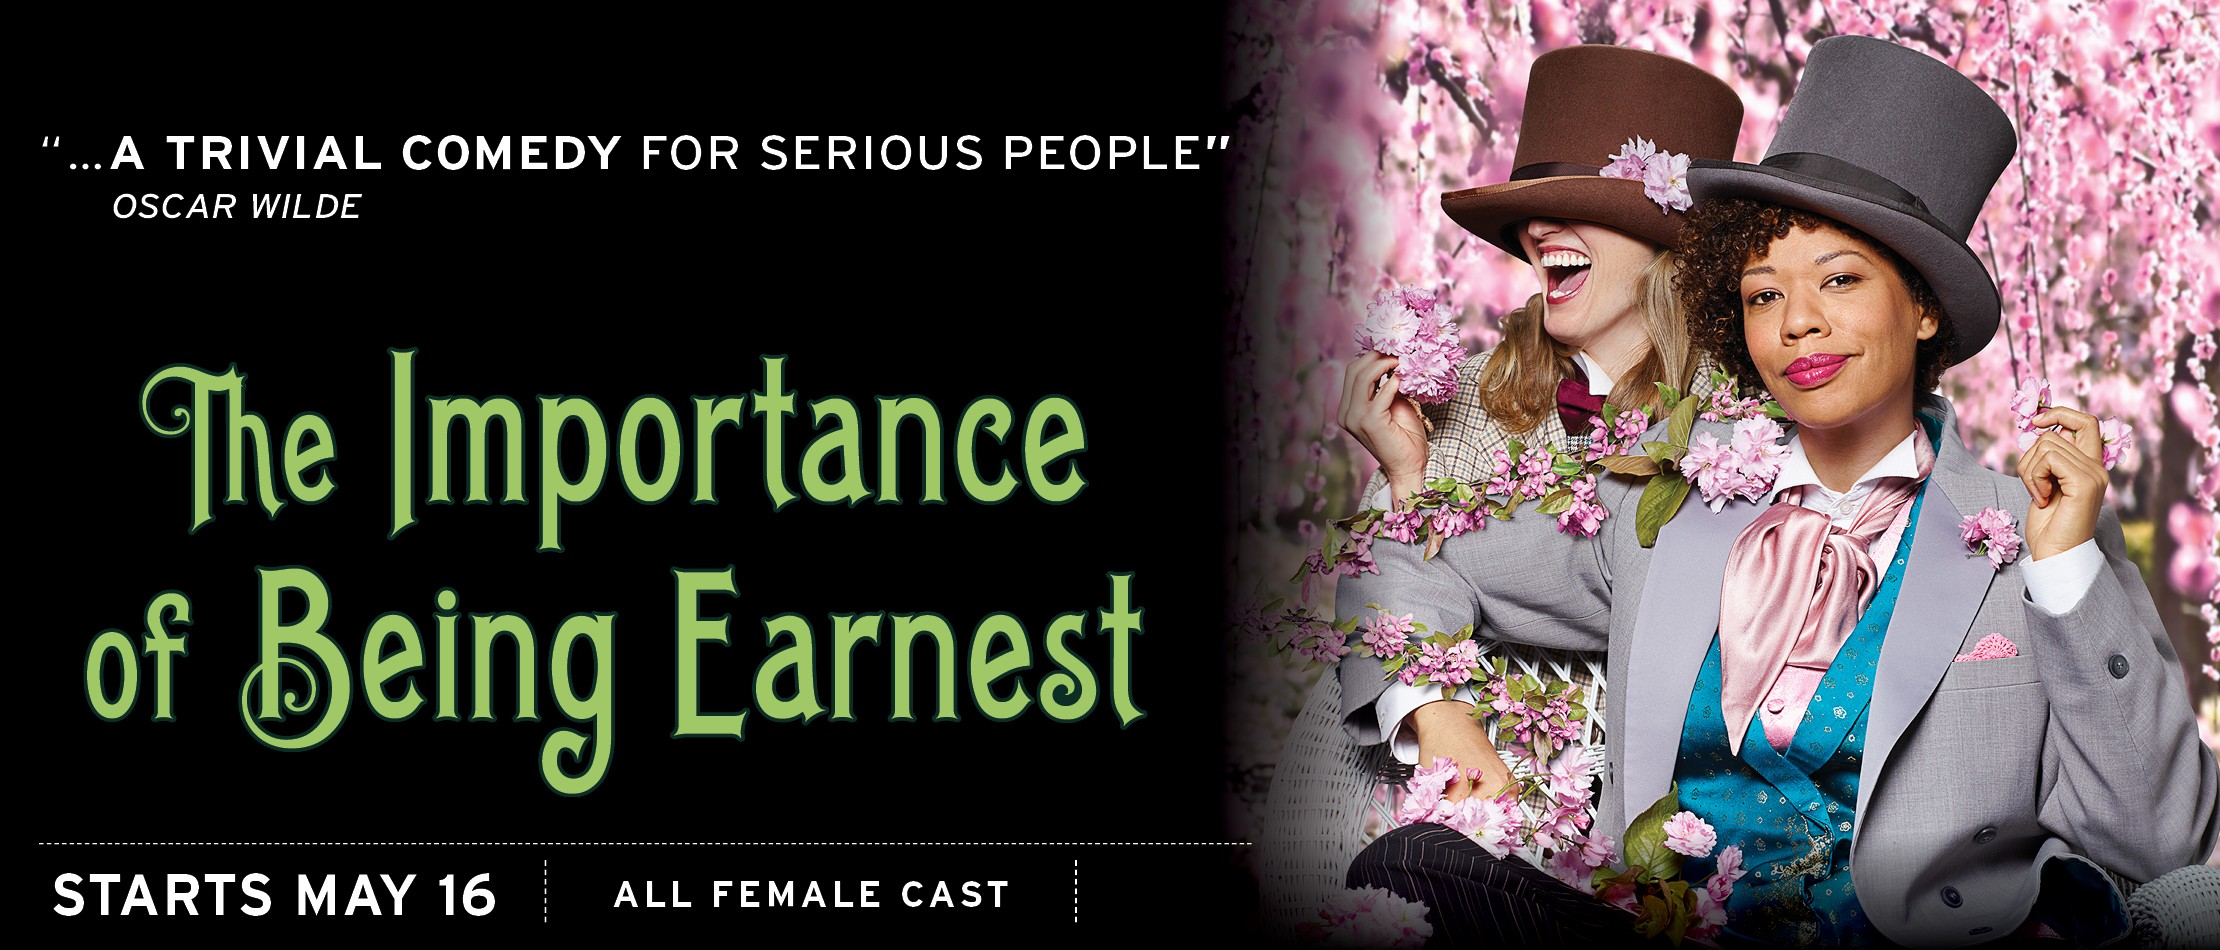 the importance of being earnest The importance of being earnest draws on elements of farce and melodrama in its depiction of a particular social world professor john stokes considers how oscar wilde combined disparate influences into a brilliant satire.